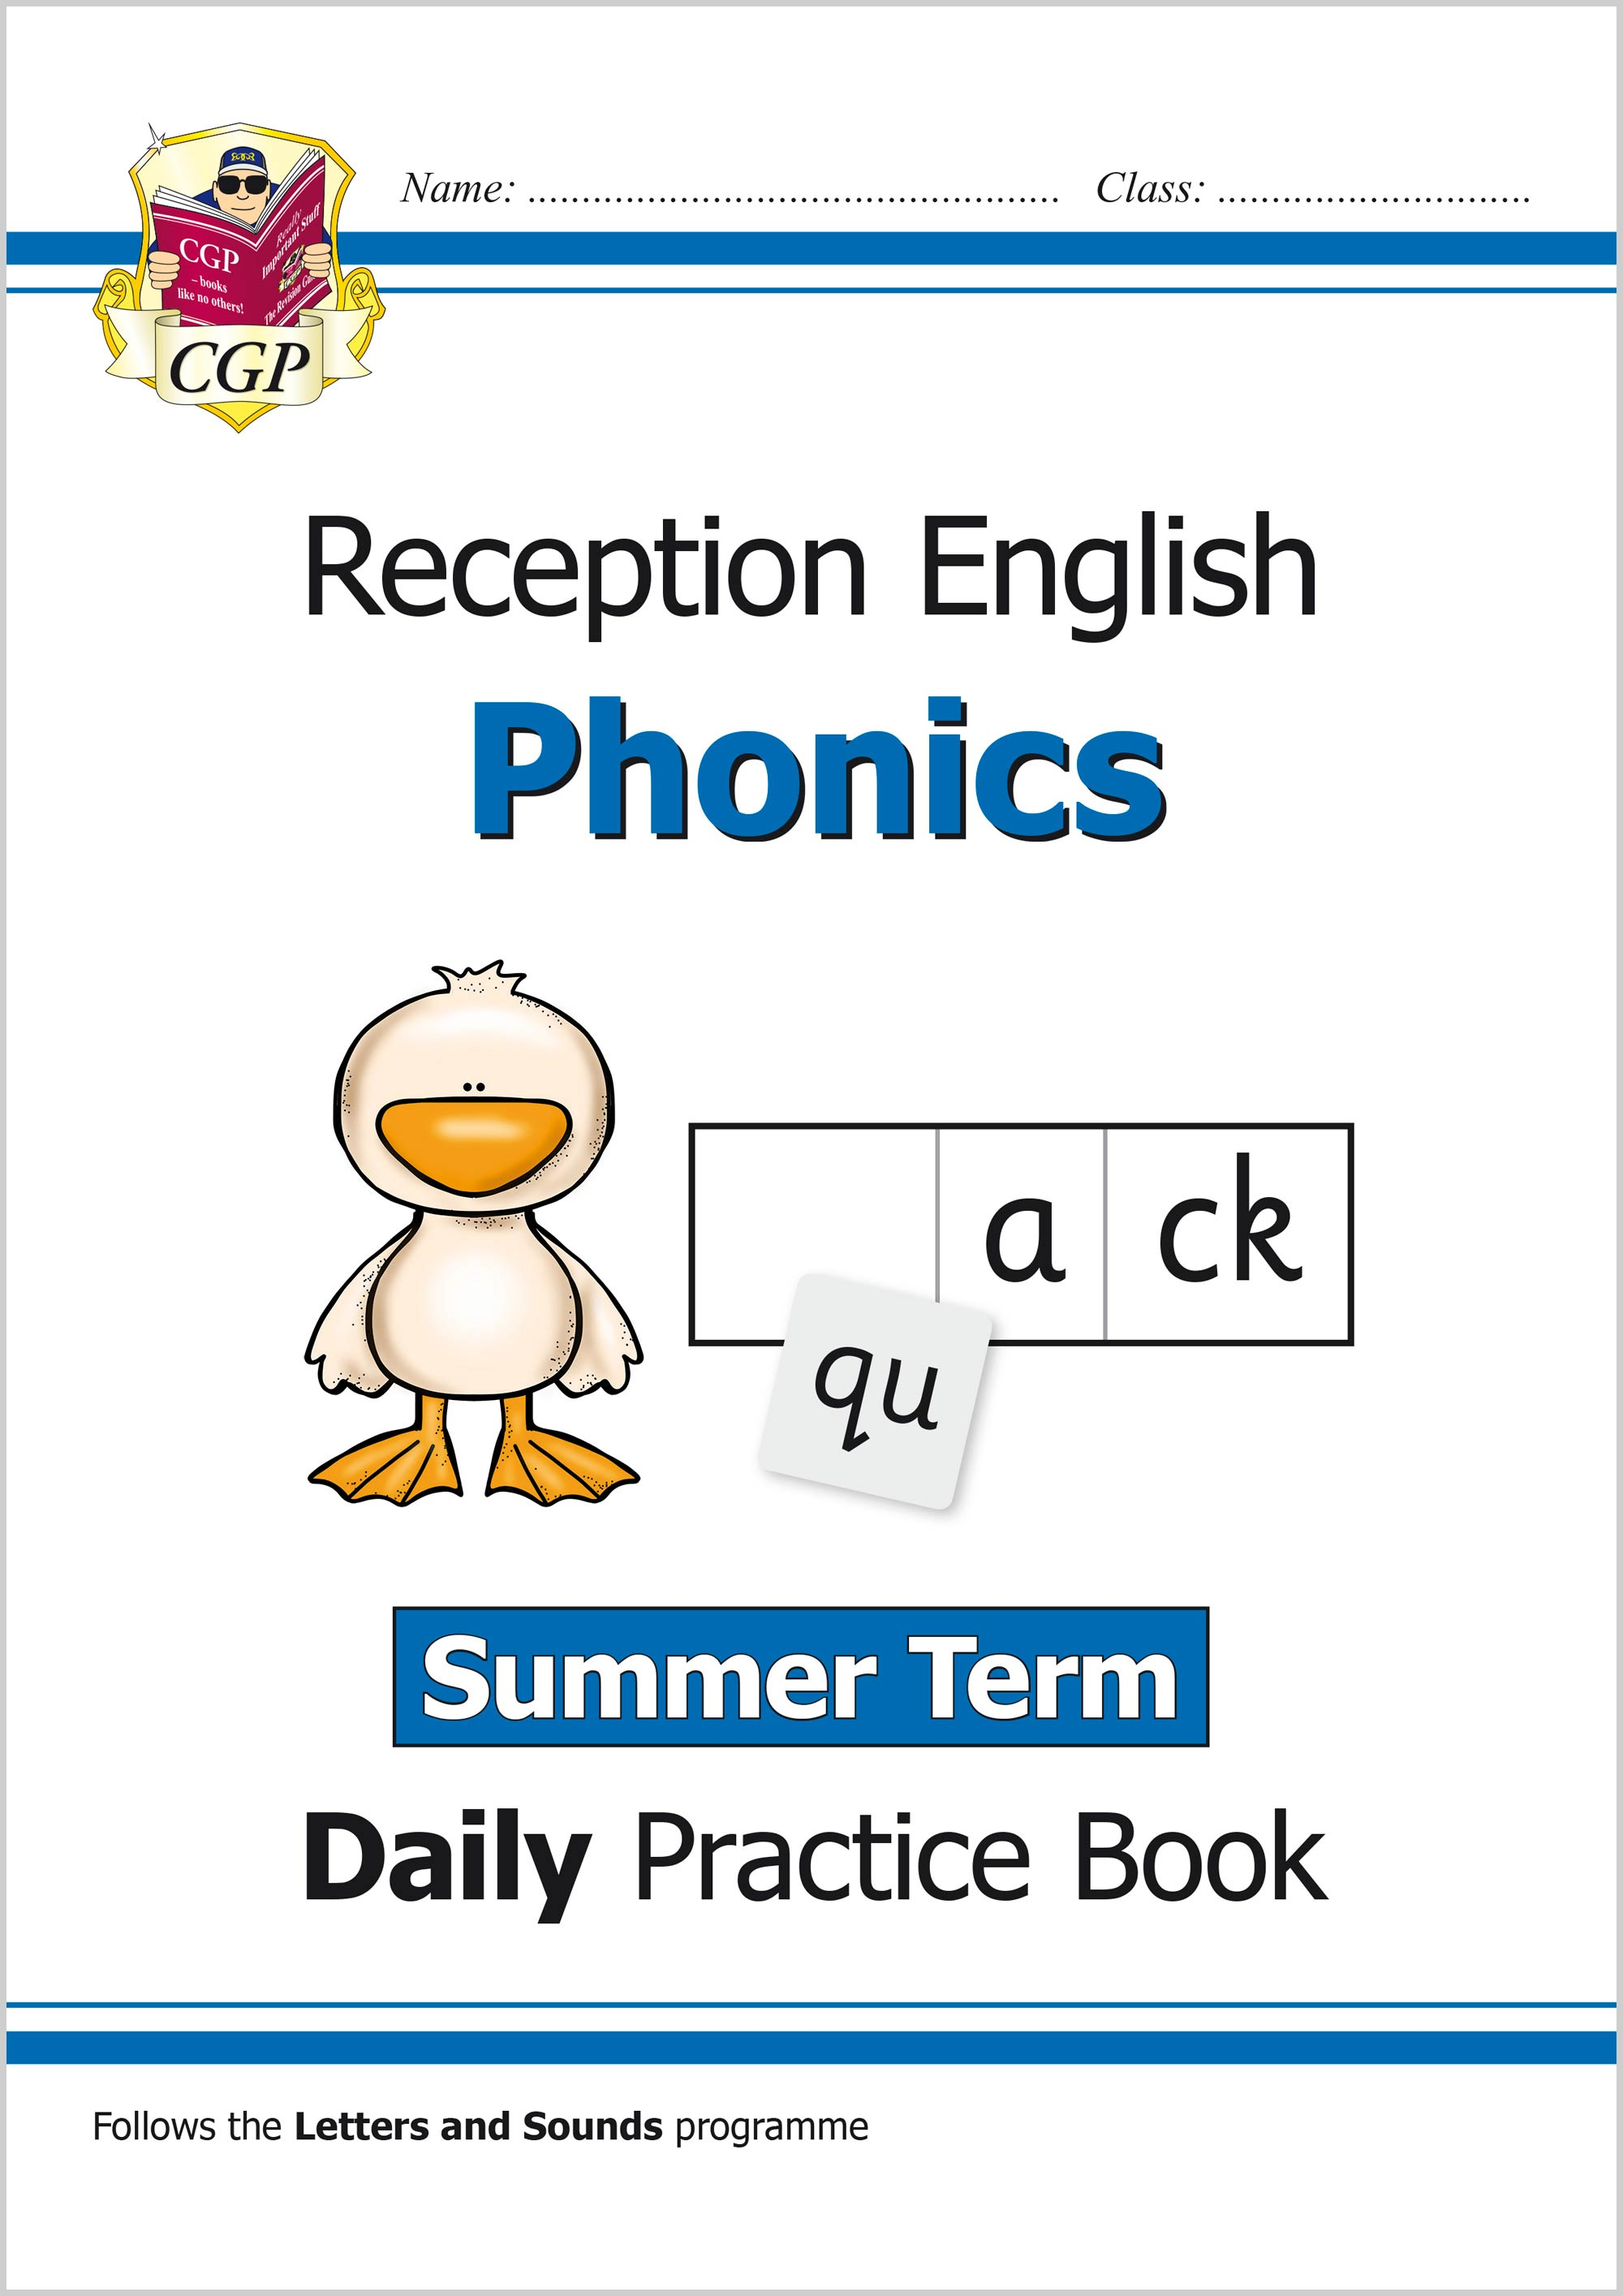 EROWSU11 - New Phonics Daily Practice Book: Reception - Summer Term